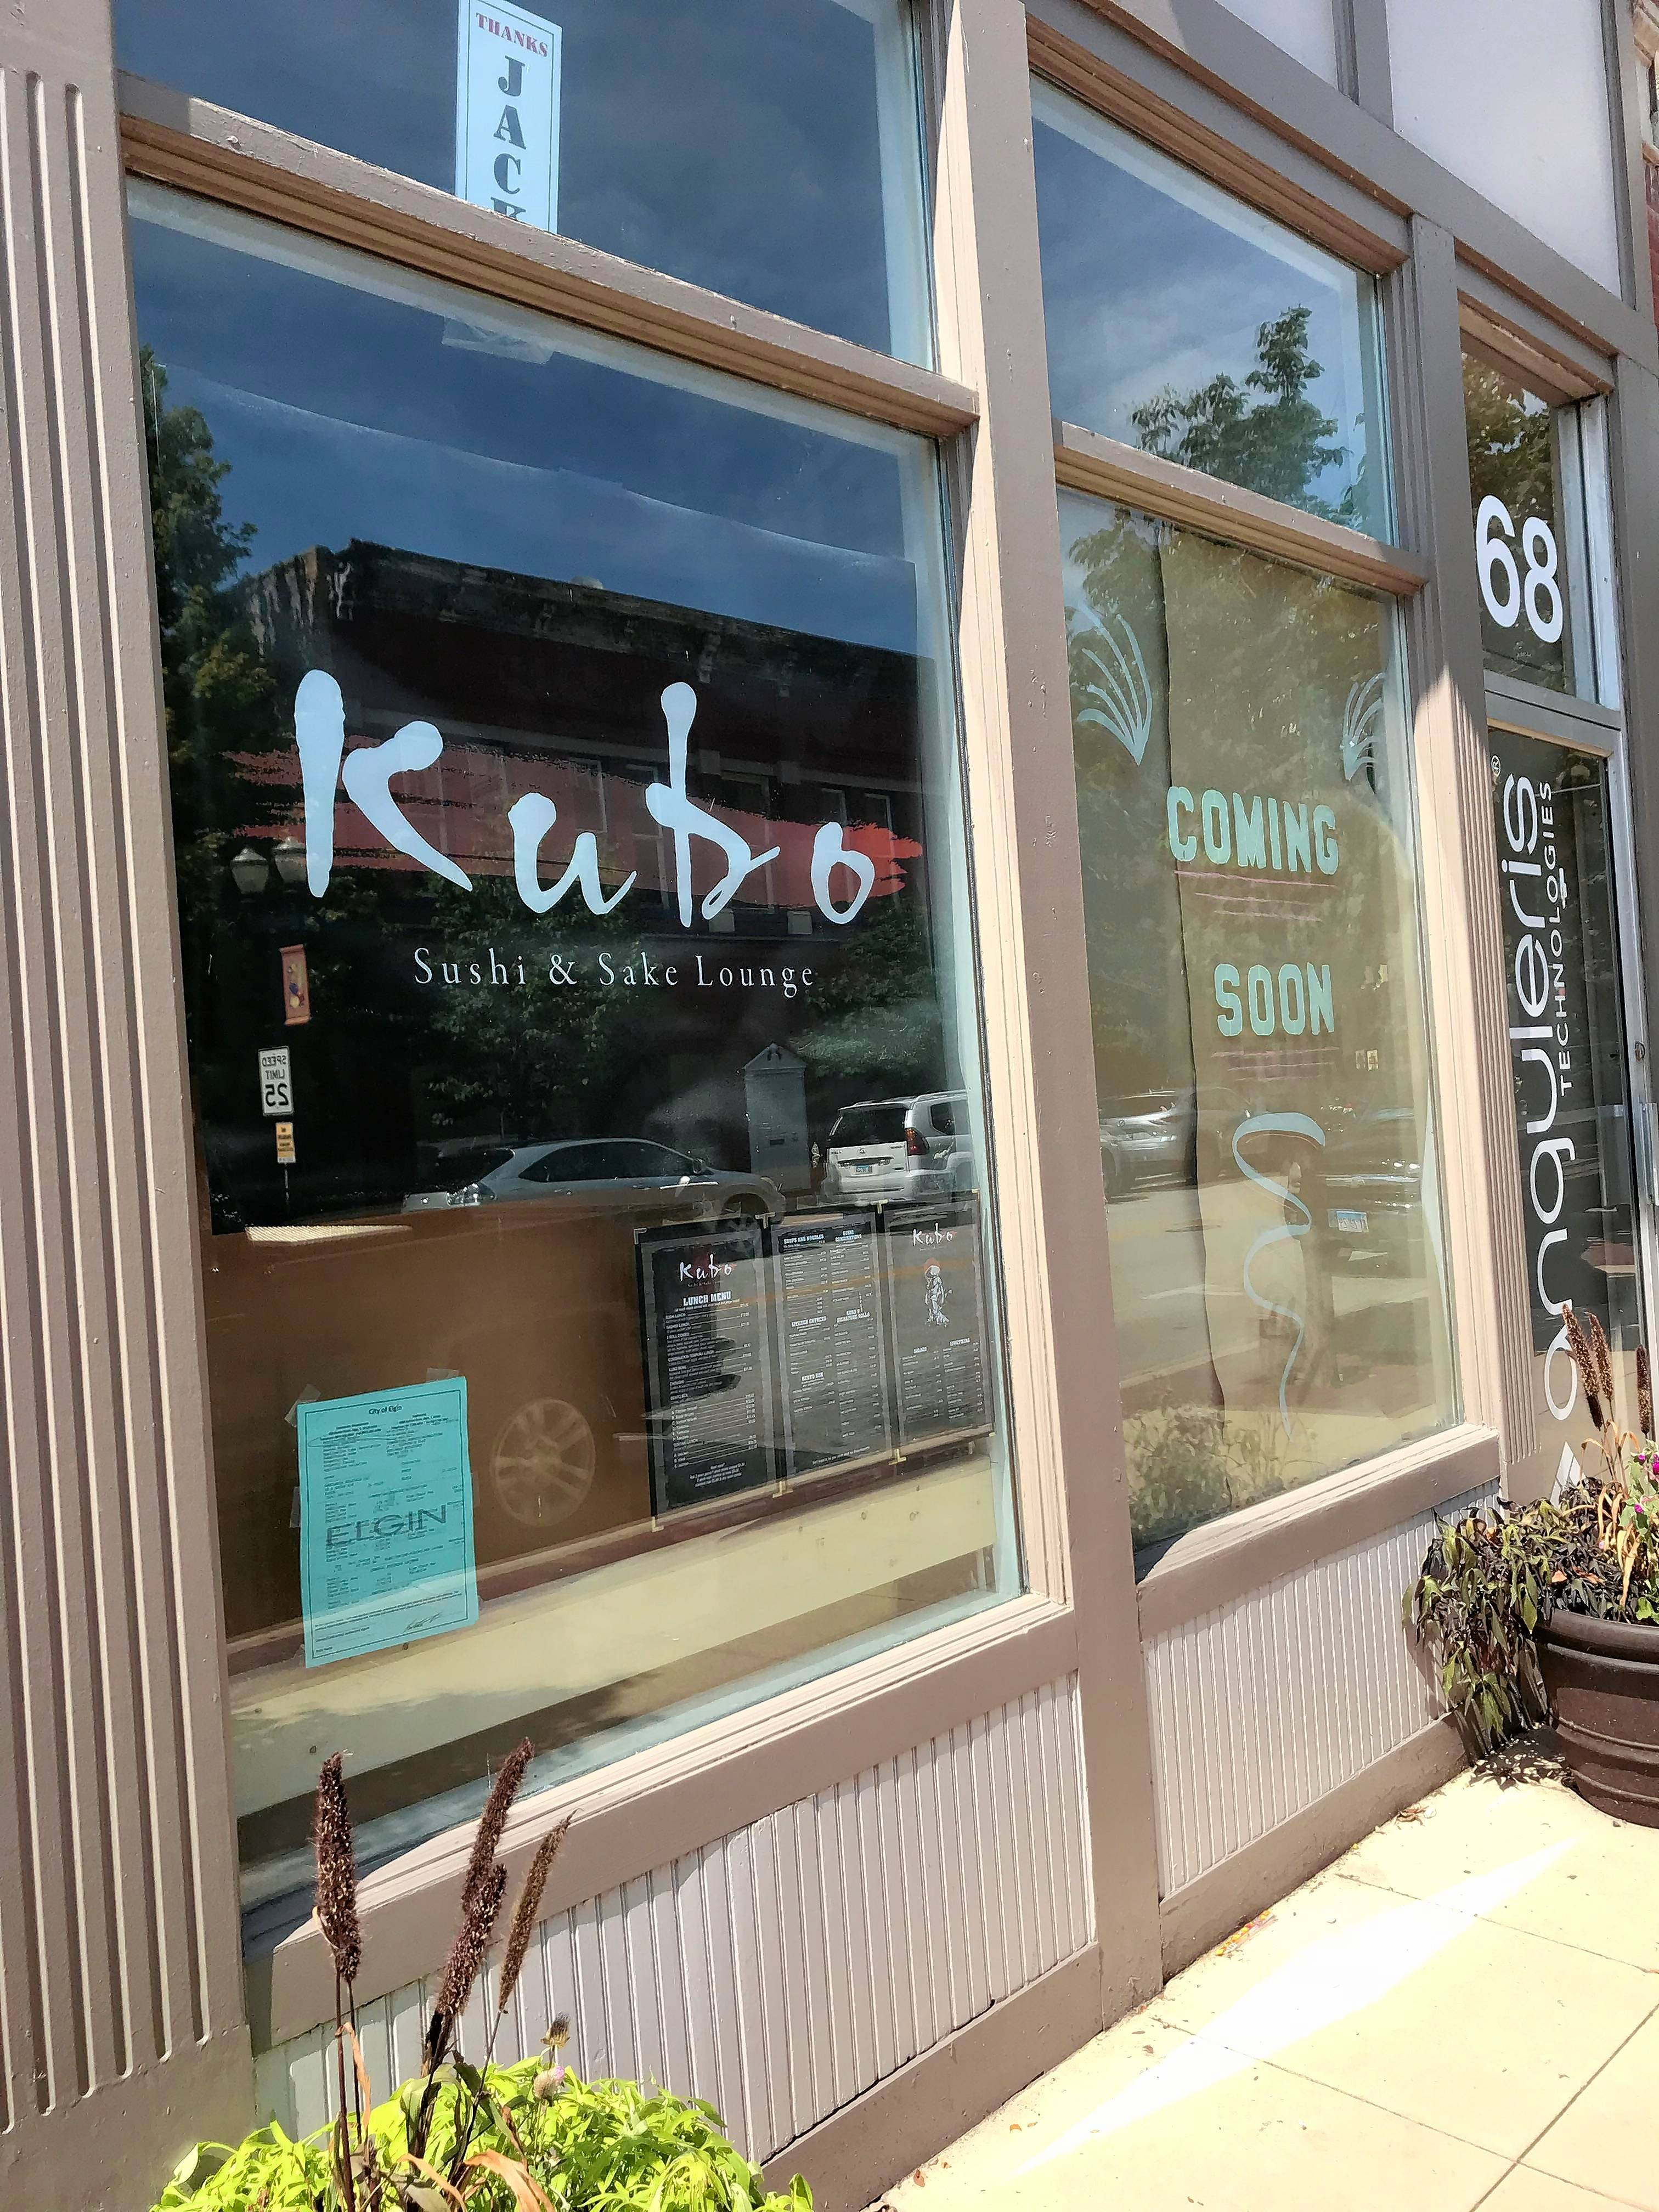 The owners of Kubo Sushi and Sake Lounge at 70 S. Grove Ave., Elgin, said they plan to open shortly after Labor Day.